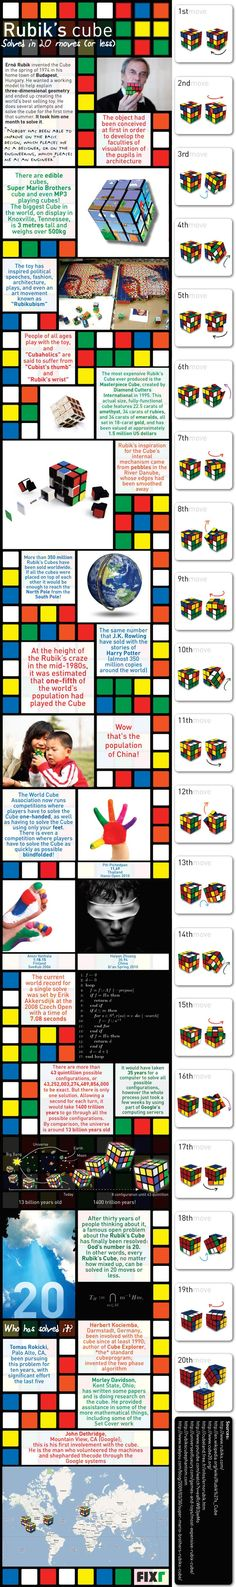 All you need to know about Rubik's Cube